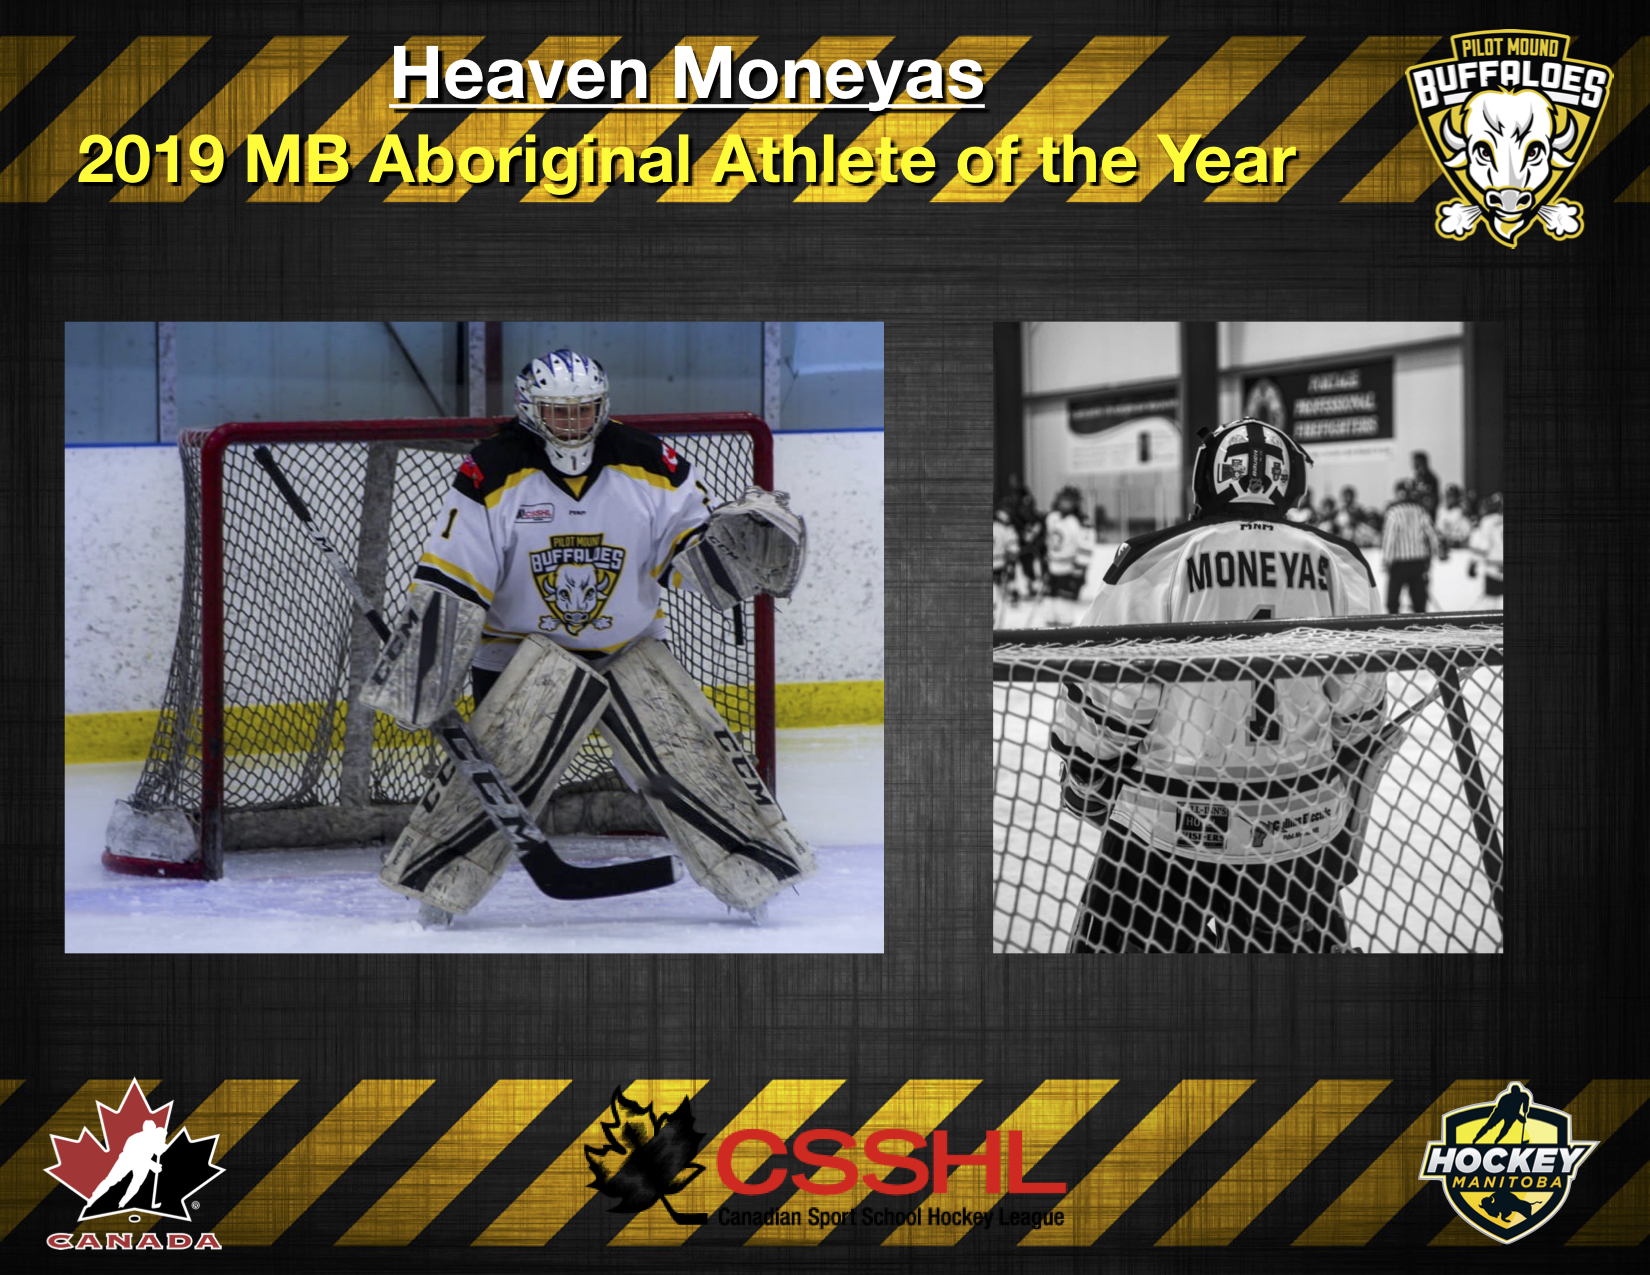 Heaven Moneyas Wins 2019 Manitoba Aboriginal Athlete of the Year